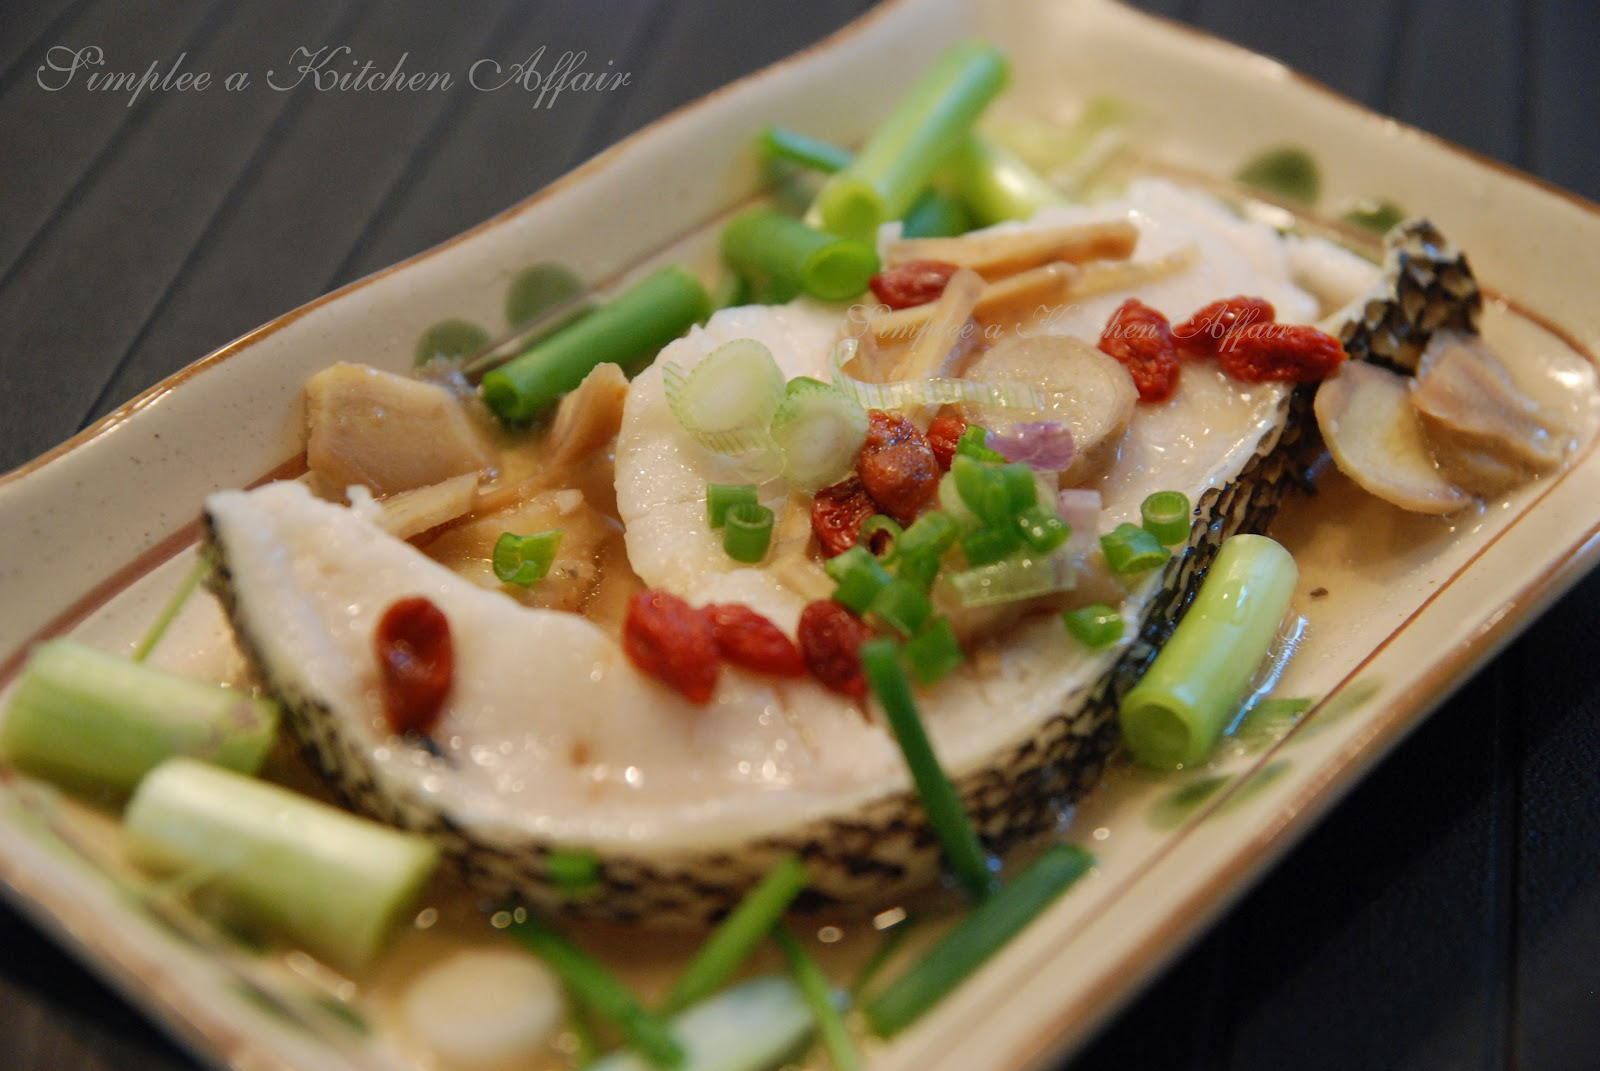 Steam Cod Fish with Ginger & Scallion